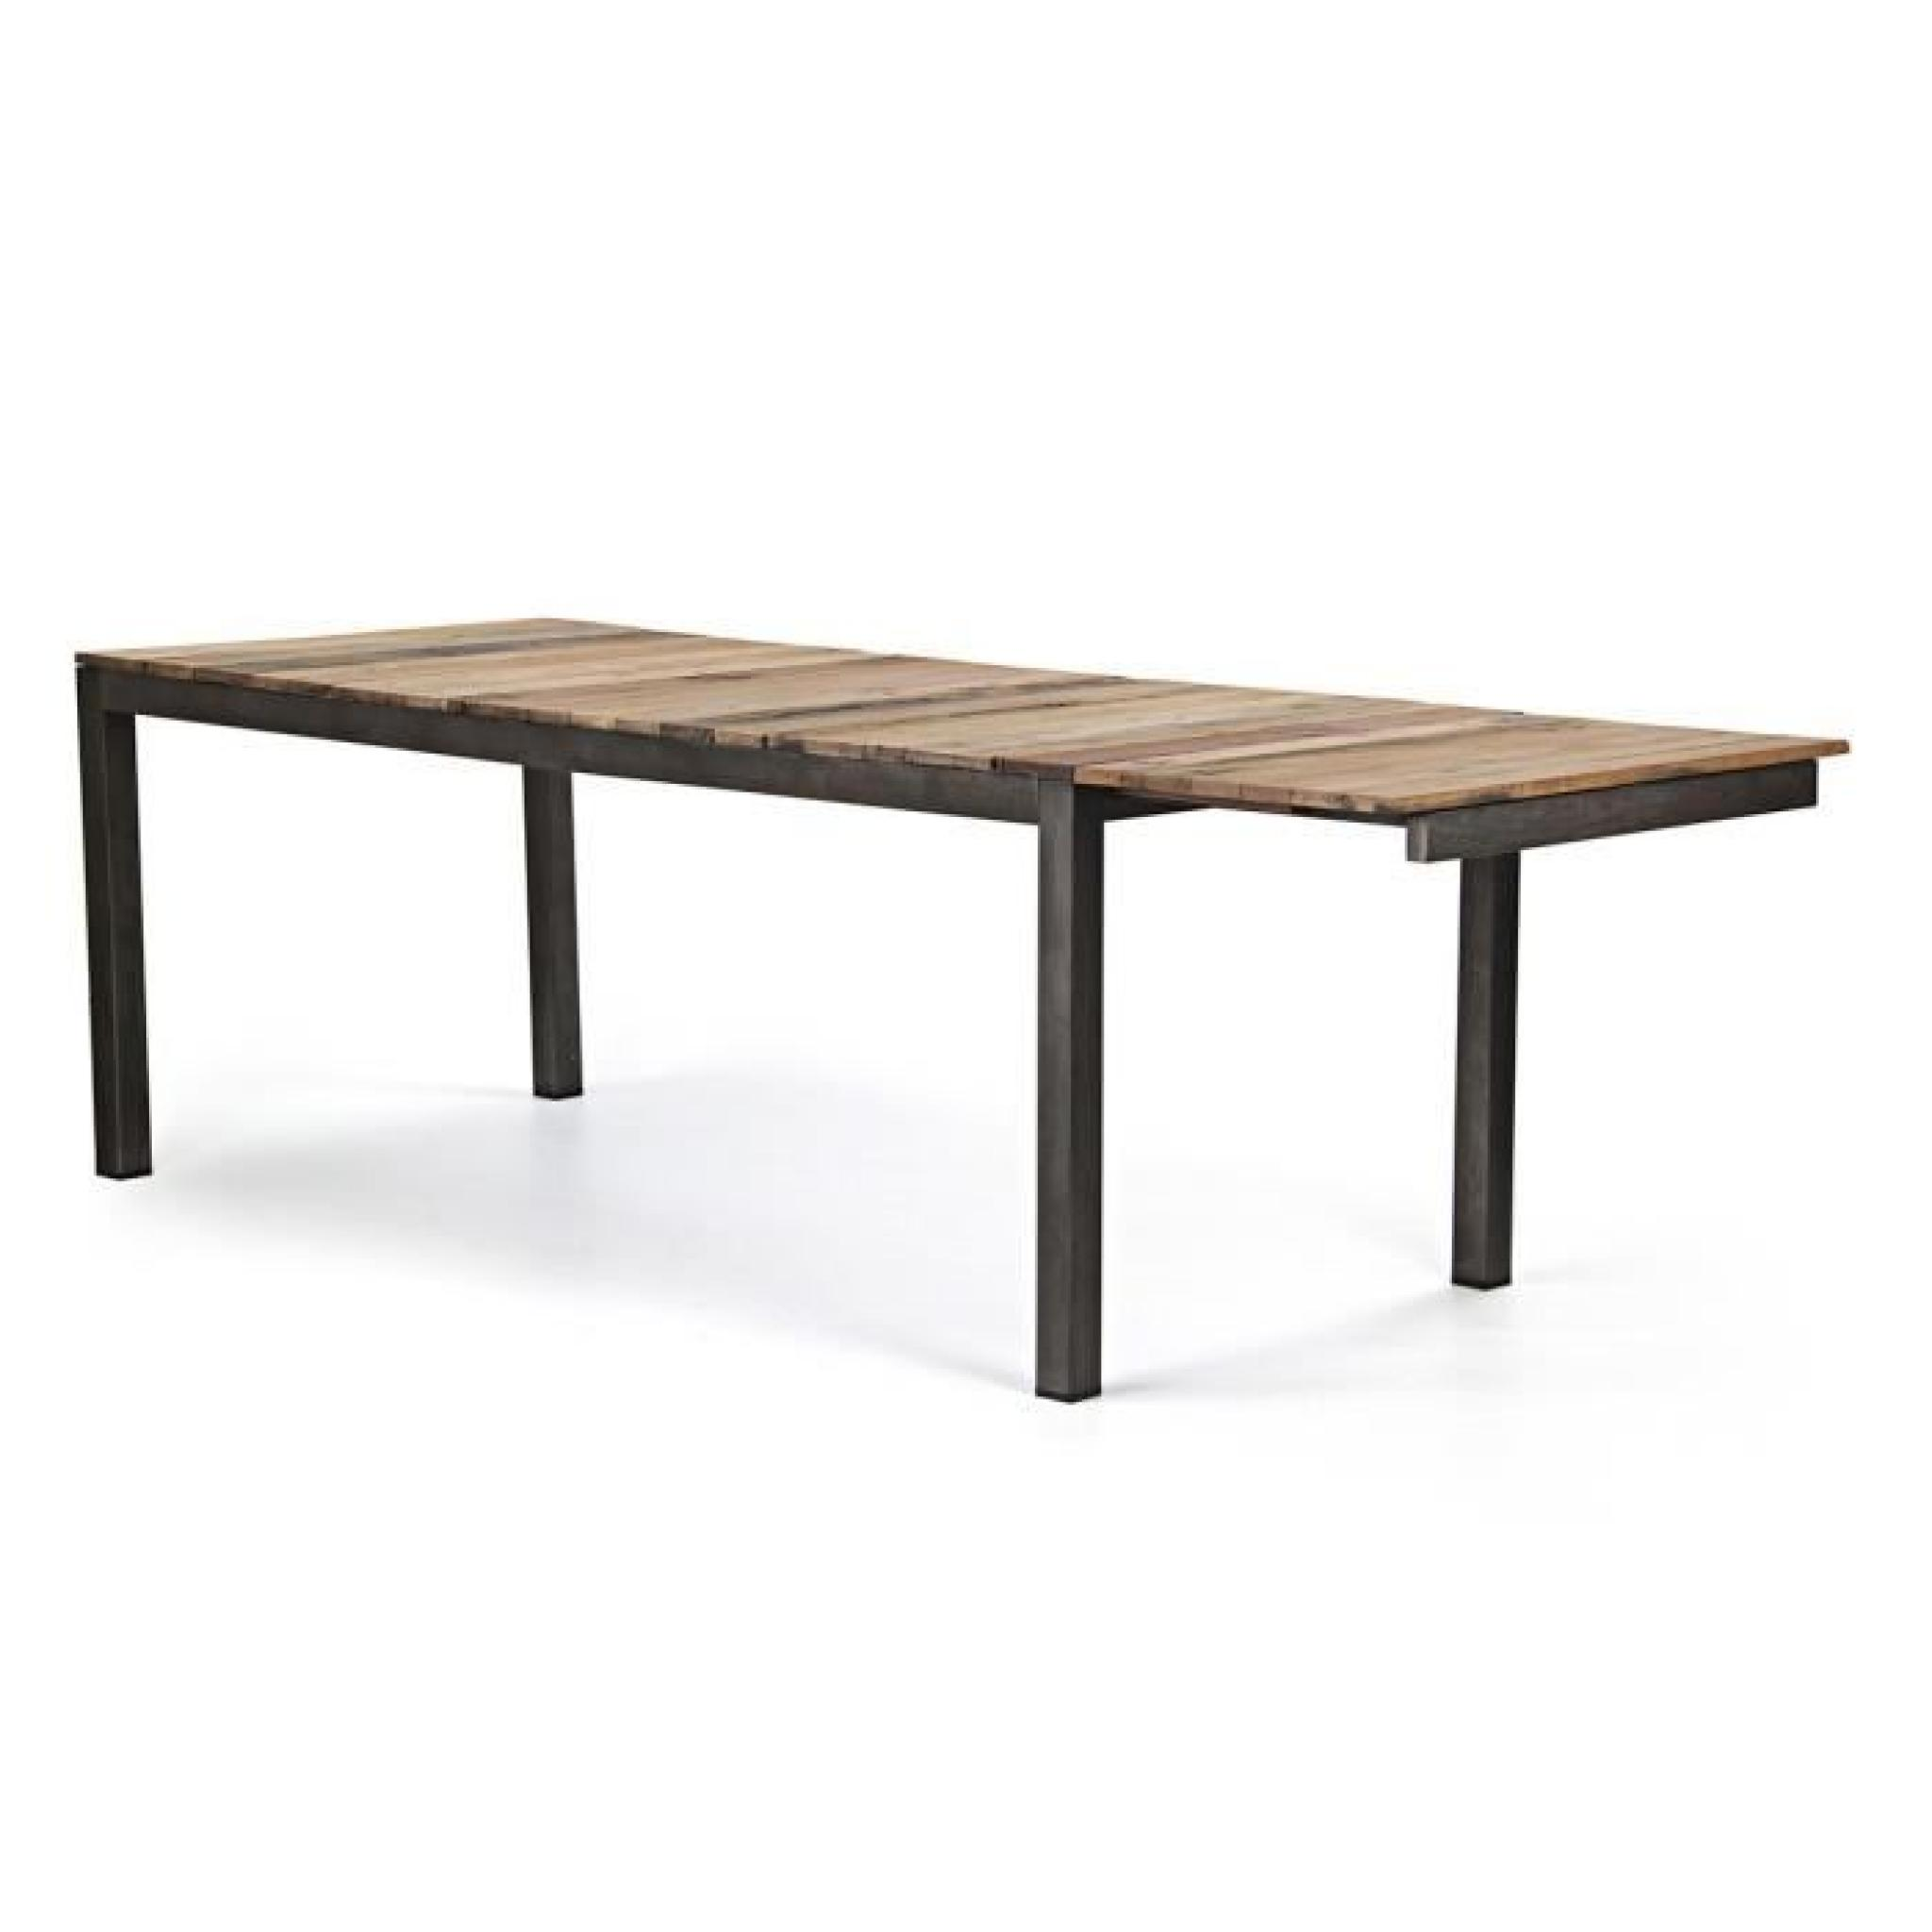 Table a manger murale maison design - Table a manger pliante ...